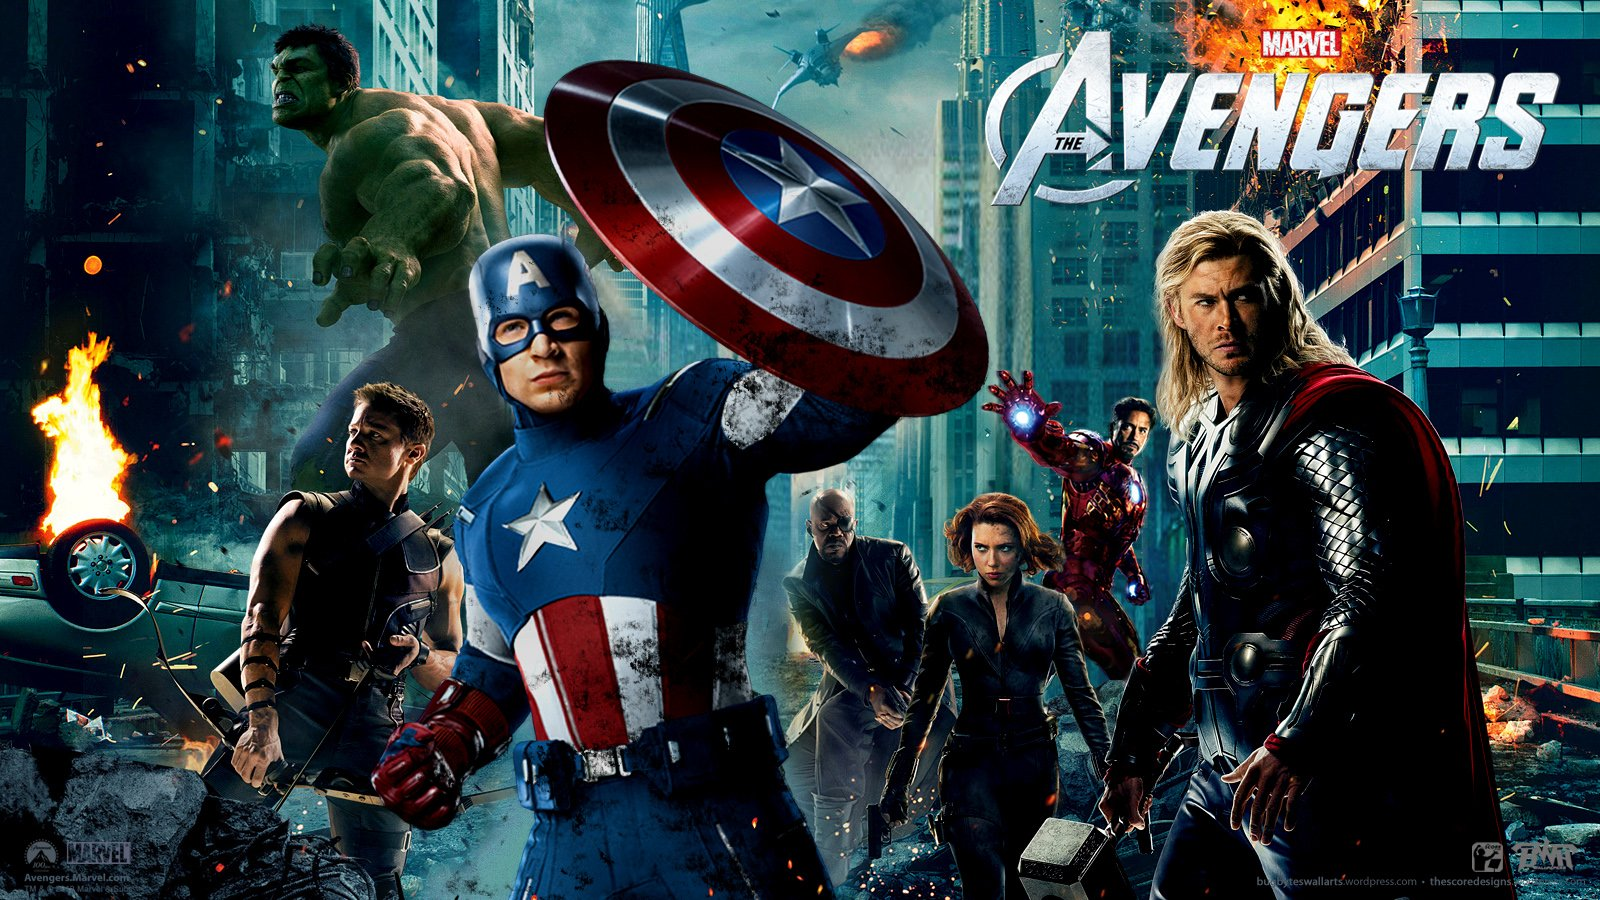 the avengers Computer Wallpapers Desktop Backgrounds 1600x900 ID 1600x900